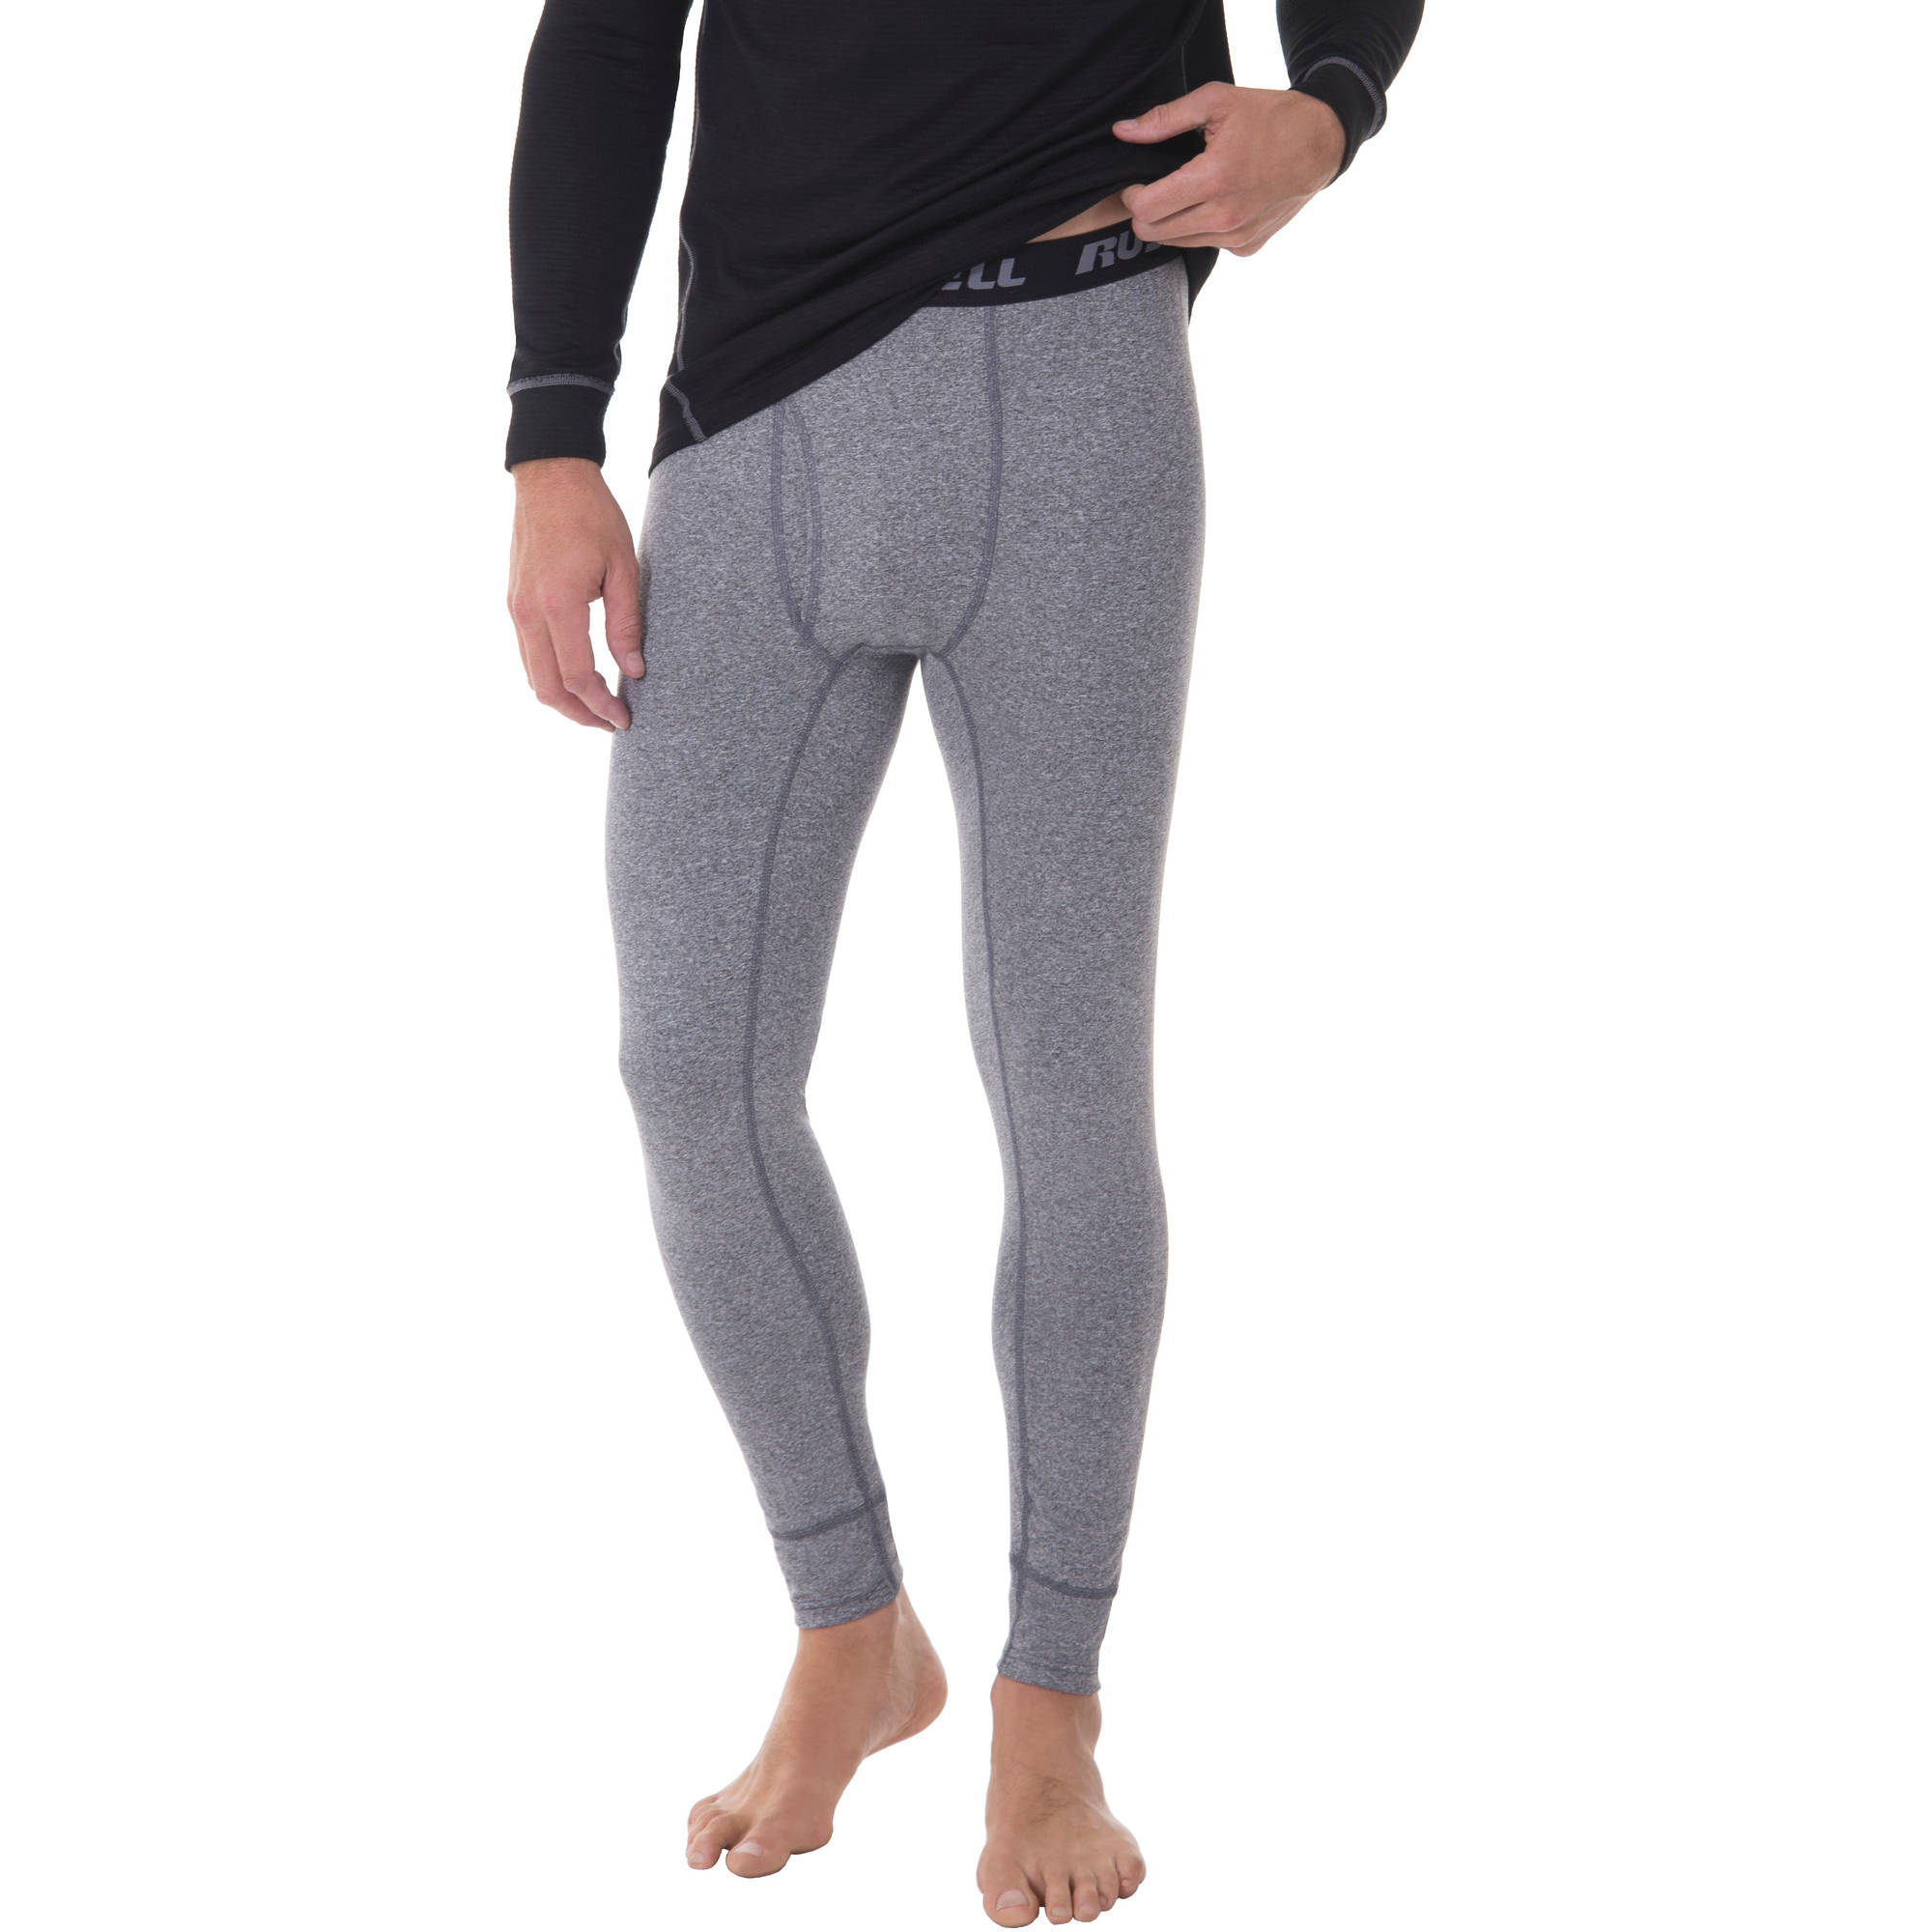 Russell Men's Base Layer Thermal Pant - Walmart.com